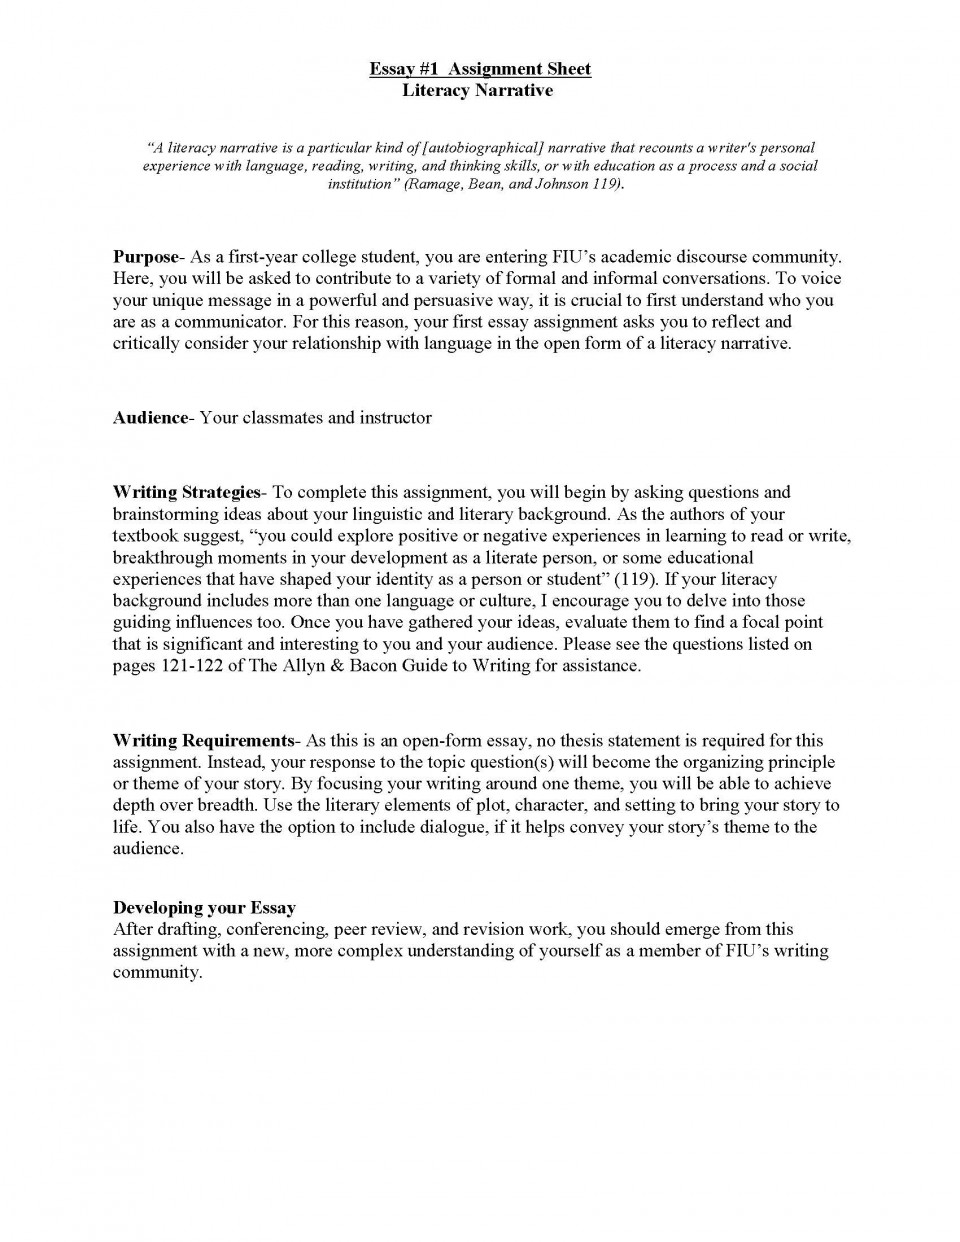 013 Essay Example Literacy Narrative Unitssignment Spring 2012 Page 1 Writing Amazing A About Being Judged Quizlet Powerpoint 960